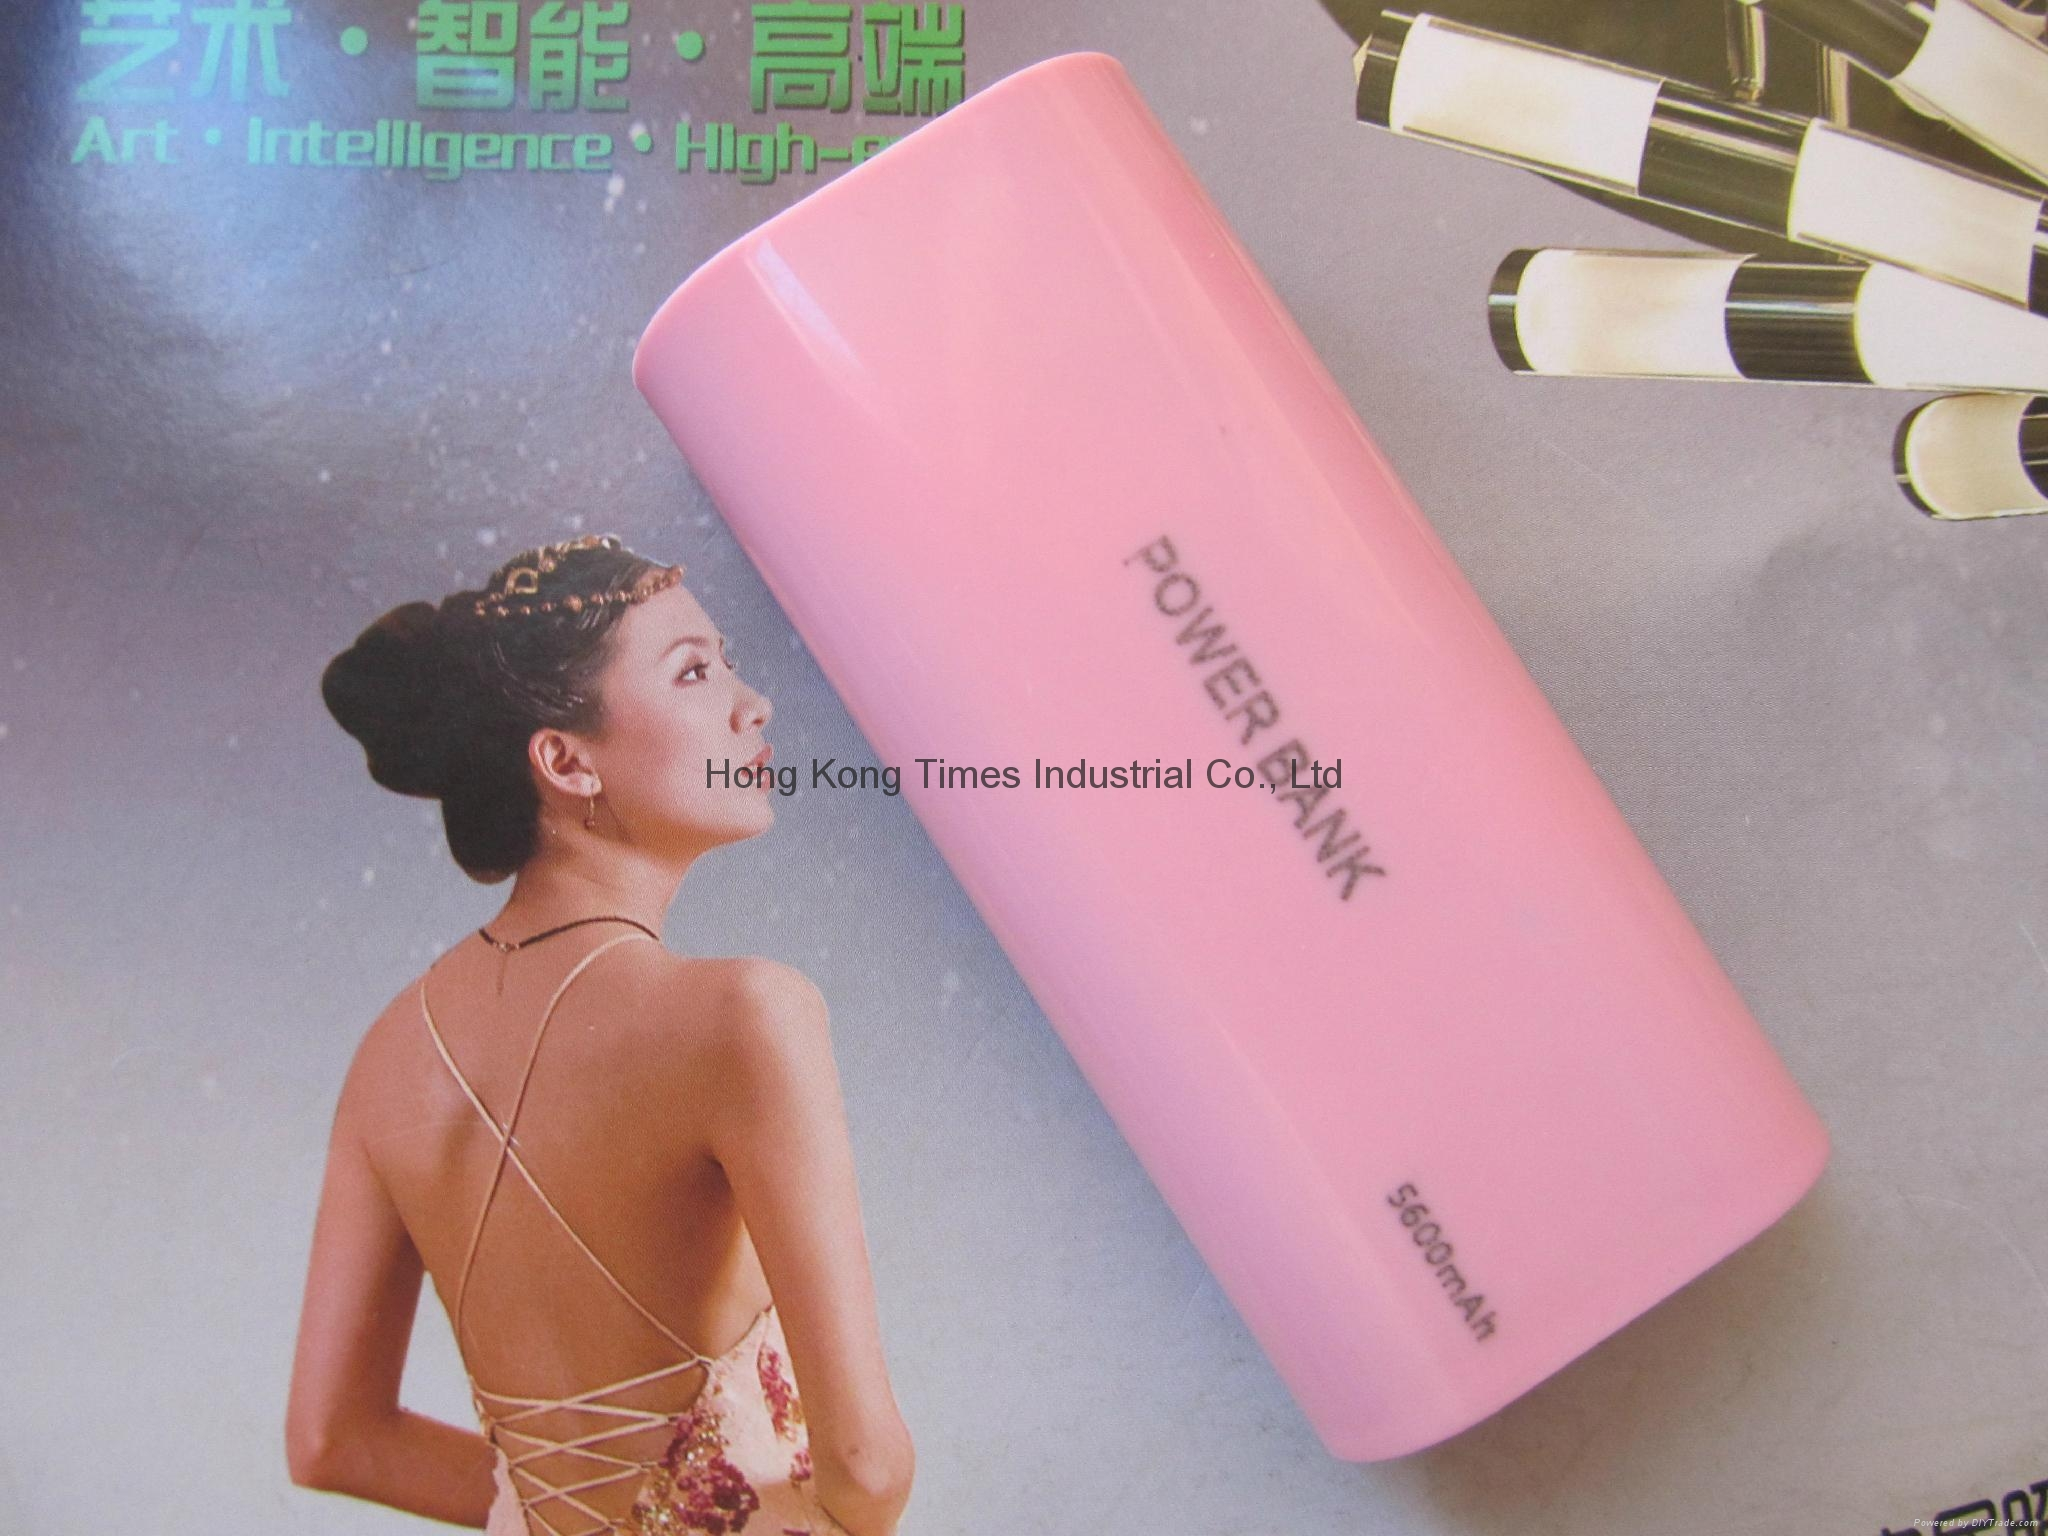 External Portable Battery Power Bank Charger For iPhone 6 6 Plus 5 5s 5c For S6 14